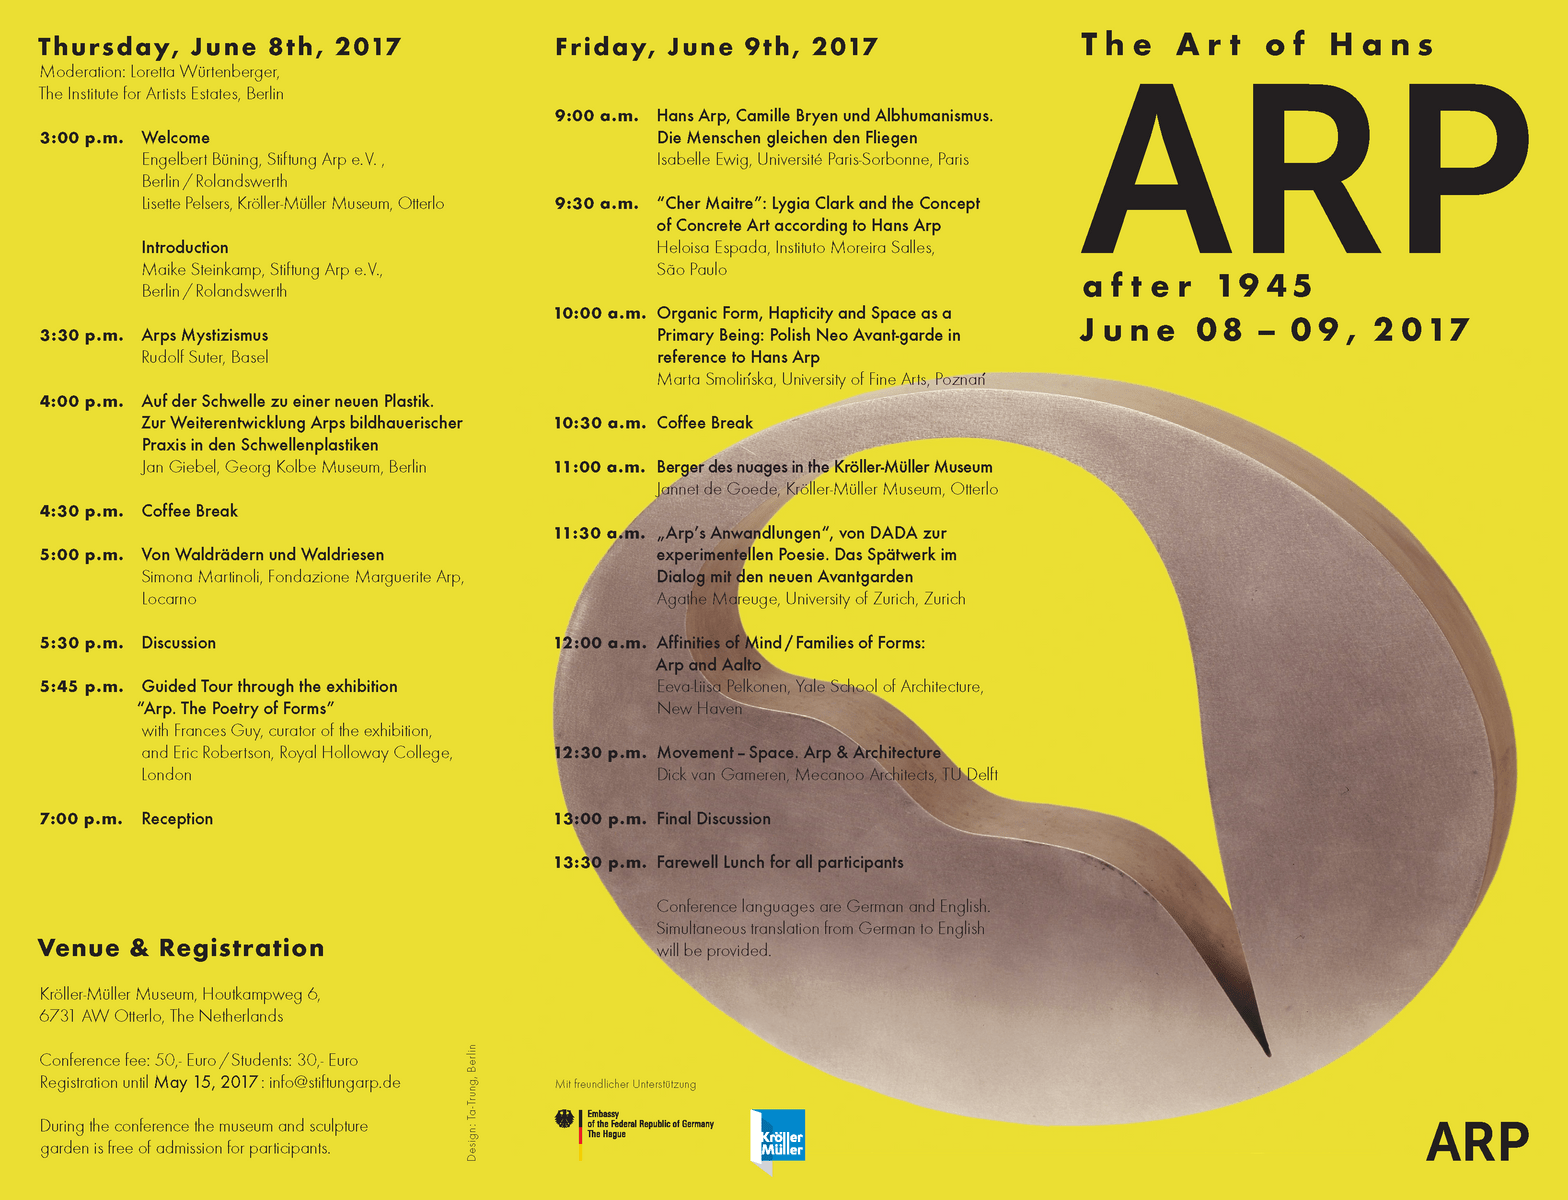 csm_Flyer_THE_ART_OF_HANS_ARP_AFTER_1945_Seite_1_3375623316